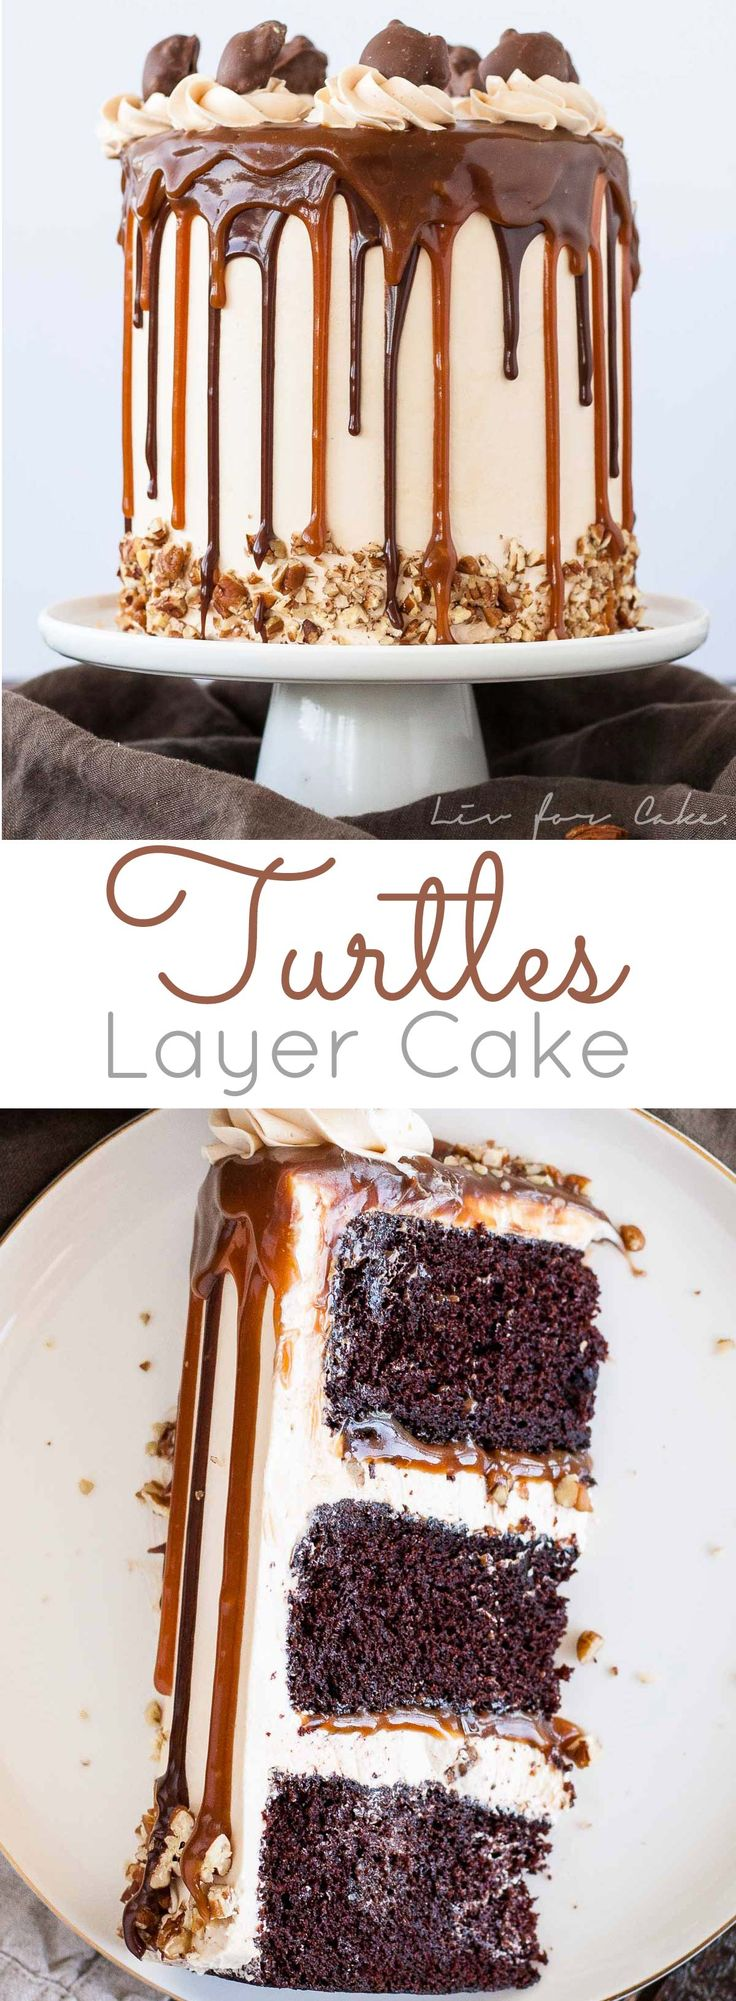 Transform your favorite candy into this Turtles Layer Cake! Layers of rich chocolate cake, caramel buttercream, caramel sauce, and chopped pecans. | livforcake.com via @livforcake